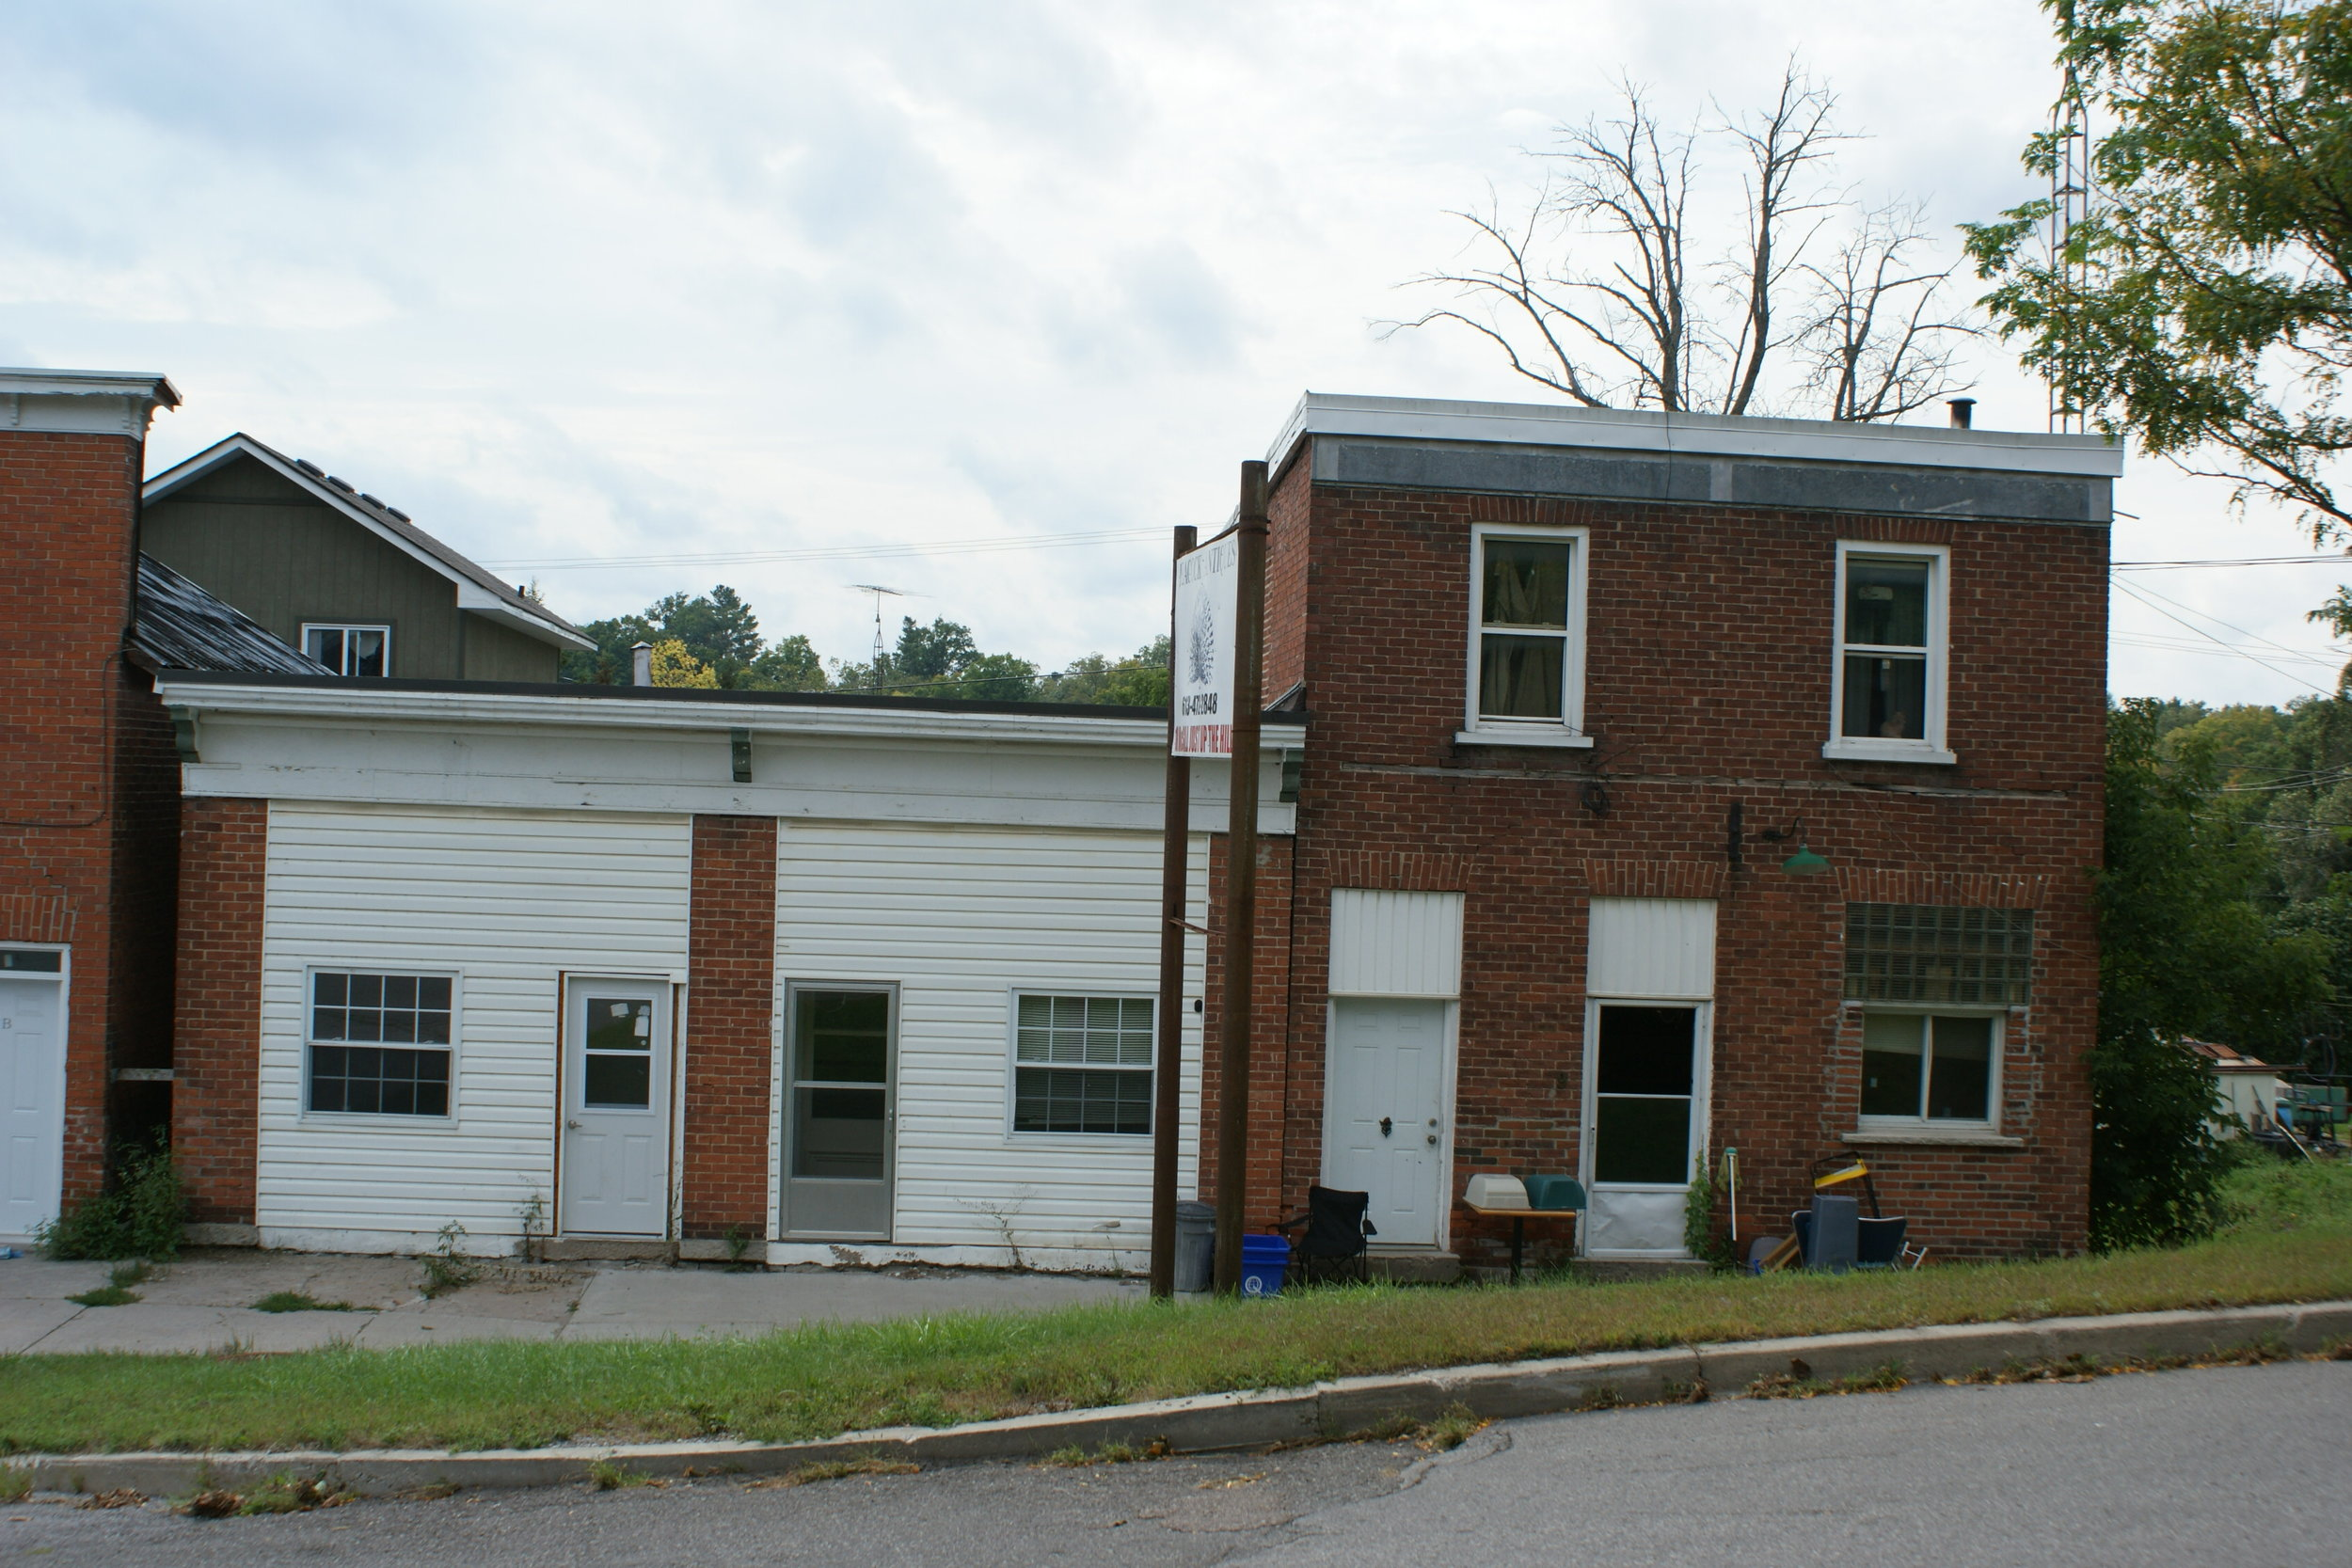 lEGION bUILDING ON RIGHT, 9 mCcGILL sTREET, mARMORA